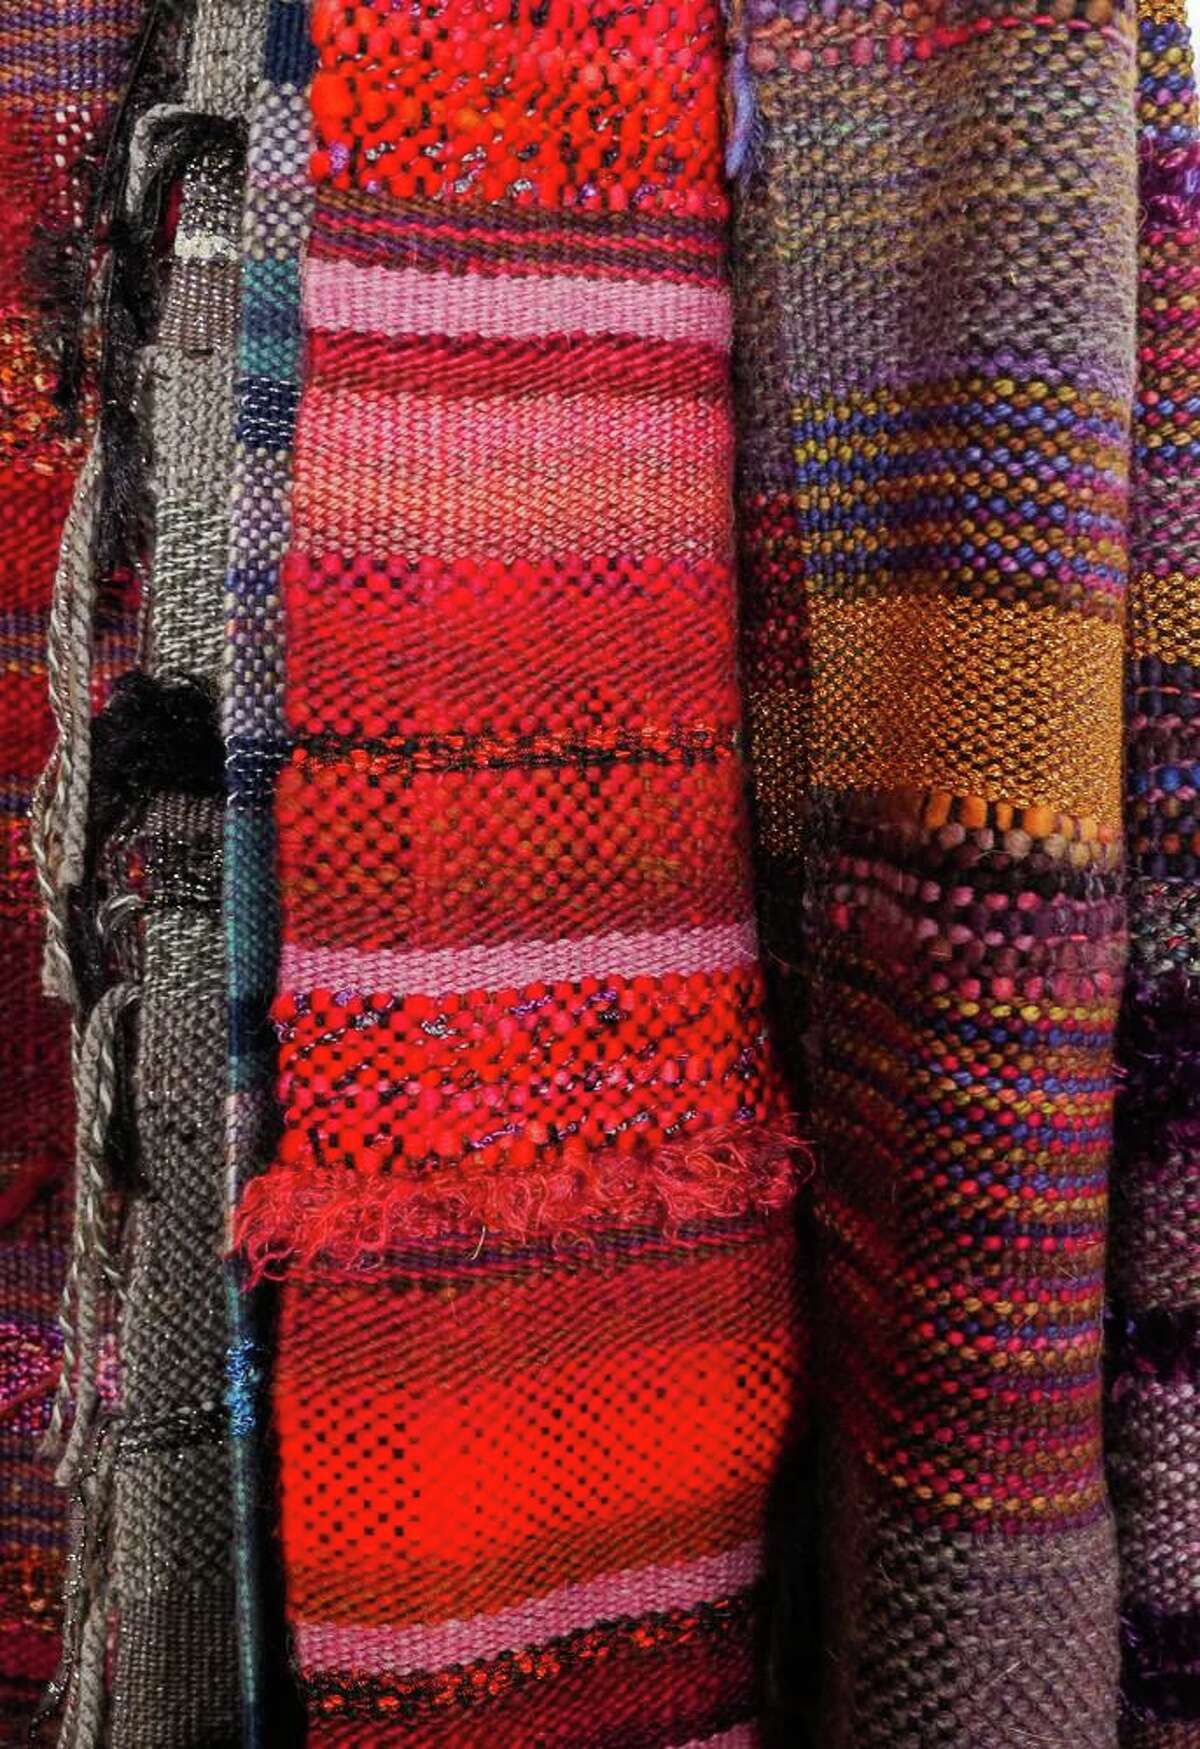 Wool scarves by Leigh Graham, seen here, are among the handcrafted items on display at Gallery 25 in New Milford. There's pottery, paintings, photographs, jewelry, fused glass platters and more. The gallery is seeking artists for